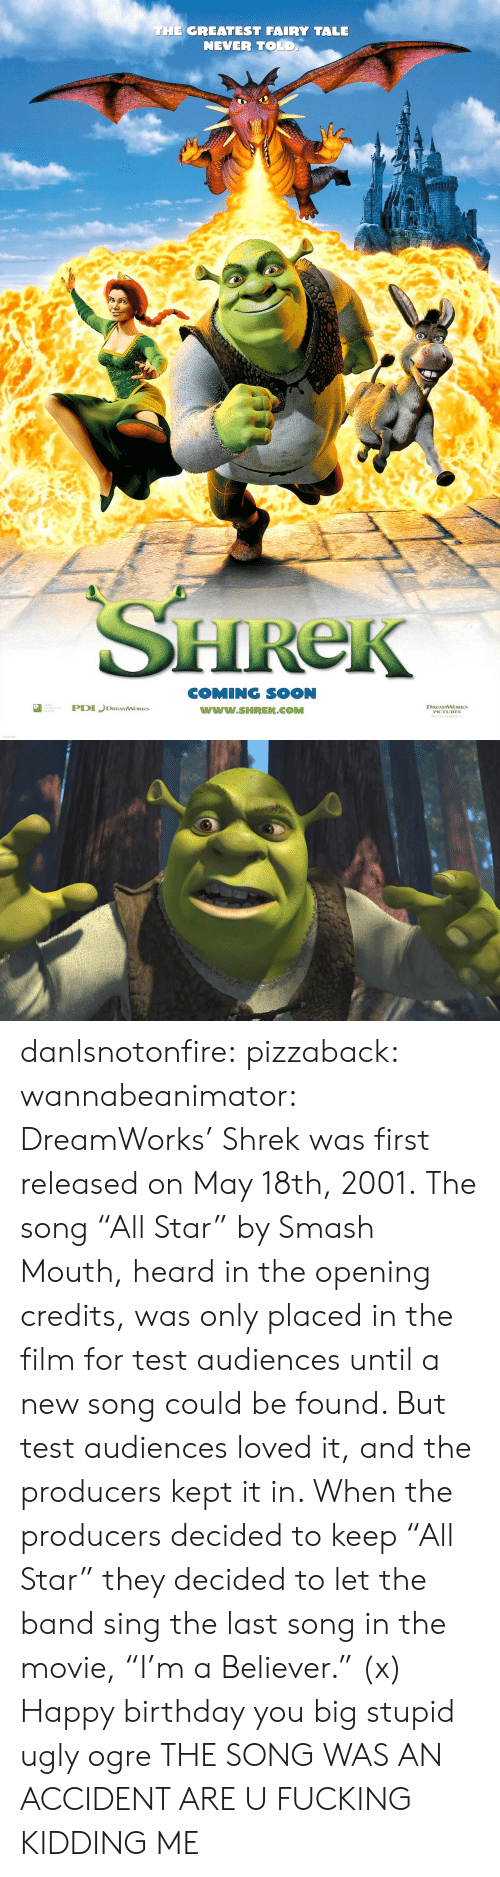 "fairy tale: THE GREATEST FAIRY TALE  NEVER TOLD  HReK  COMING SOON  www.SHREK.COMM  ted  DREAMWORKS danlsnotonfire: pizzaback:   wannabeanimator:   DreamWorks' Shrek was first released on May 18th, 2001. The song ""All Star"" by Smash Mouth, heard in the opening credits, was only placed in the film for test audiences until a new song could be found. But test audiences loved it, and the producers kept it in. When the producers decided to keep ""All Star"" they decided to let the band sing the last song in the movie, ""I'm a Believer."" (x)   Happy birthday you big stupid ugly ogre   THE SONG WAS AN ACCIDENT ARE U FUCKING KIDDING ME"